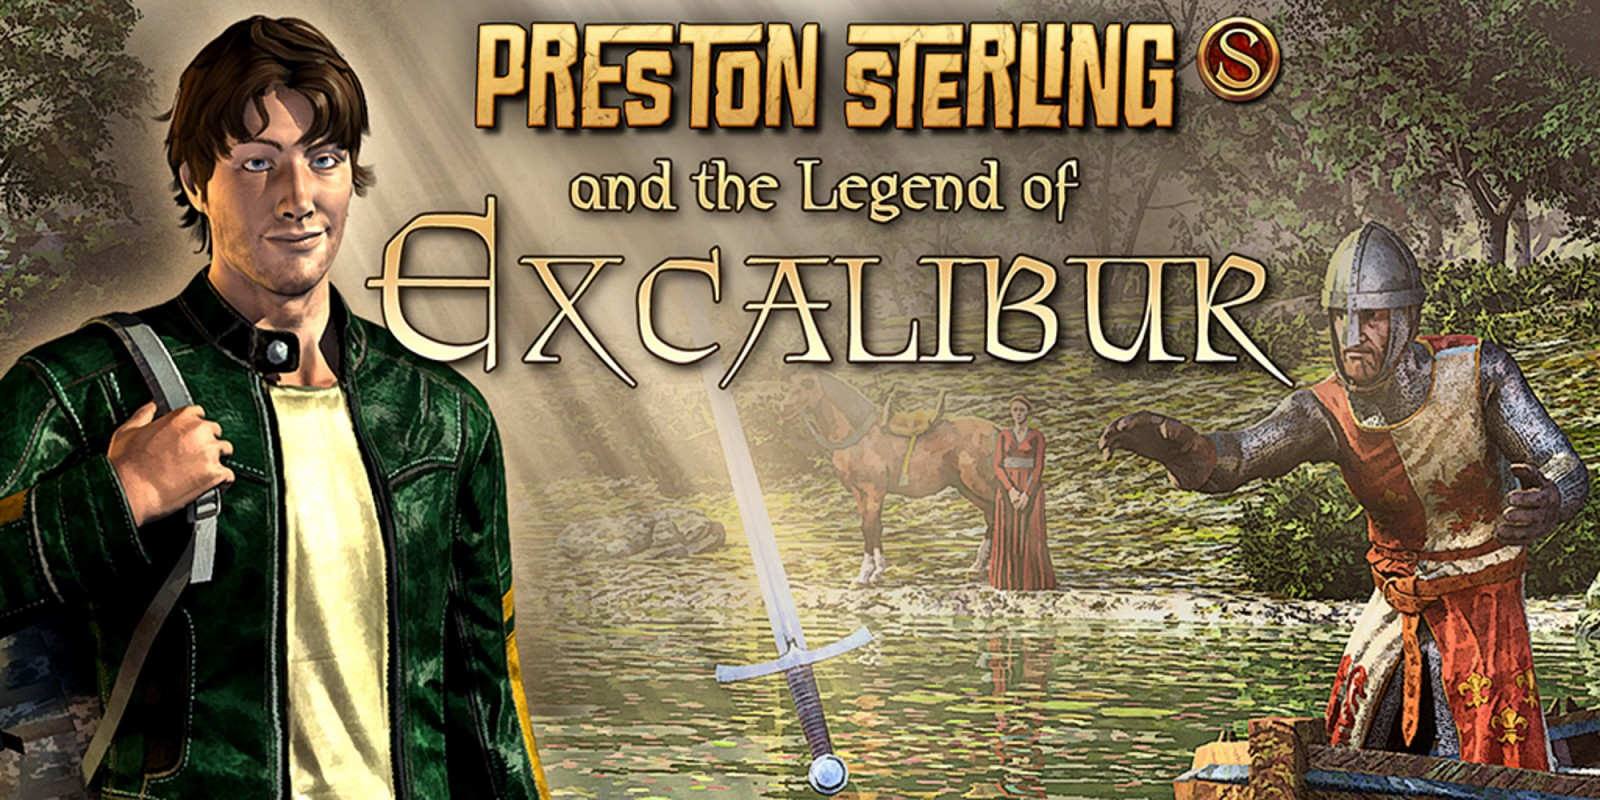 Preston Sterling and the Legend of Excalibur